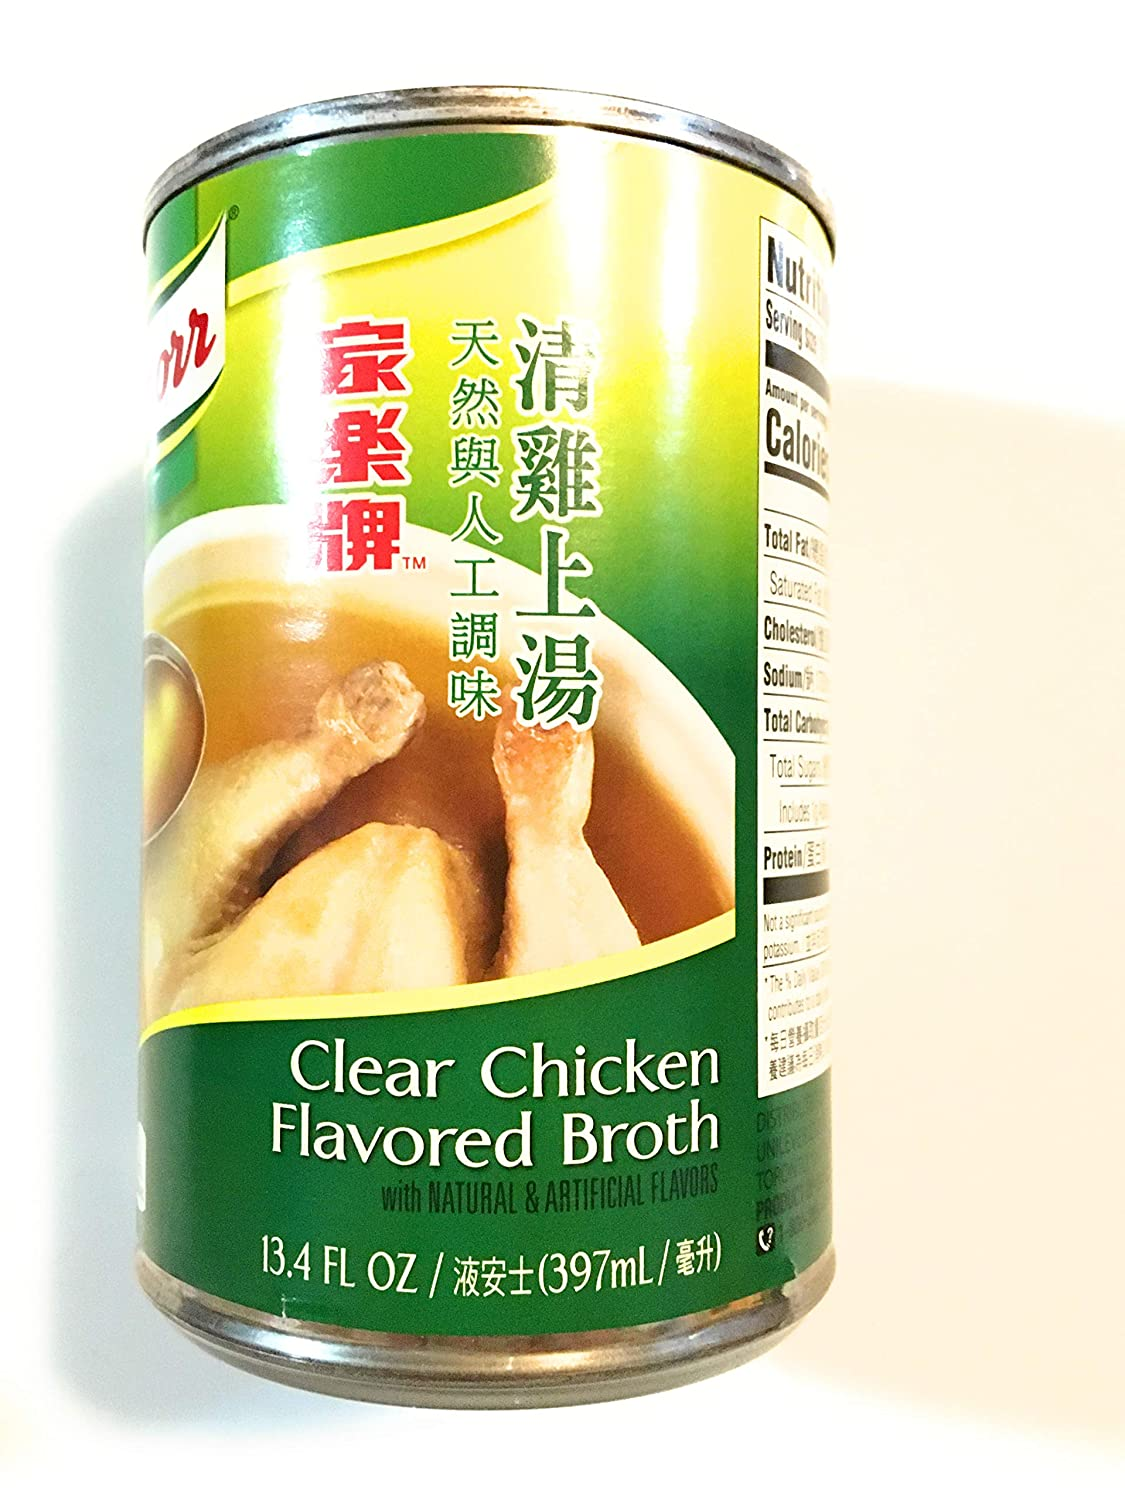 Knotrr Clear Chicken Flavored Broth 13.4 Fl Oz(4 Pack)